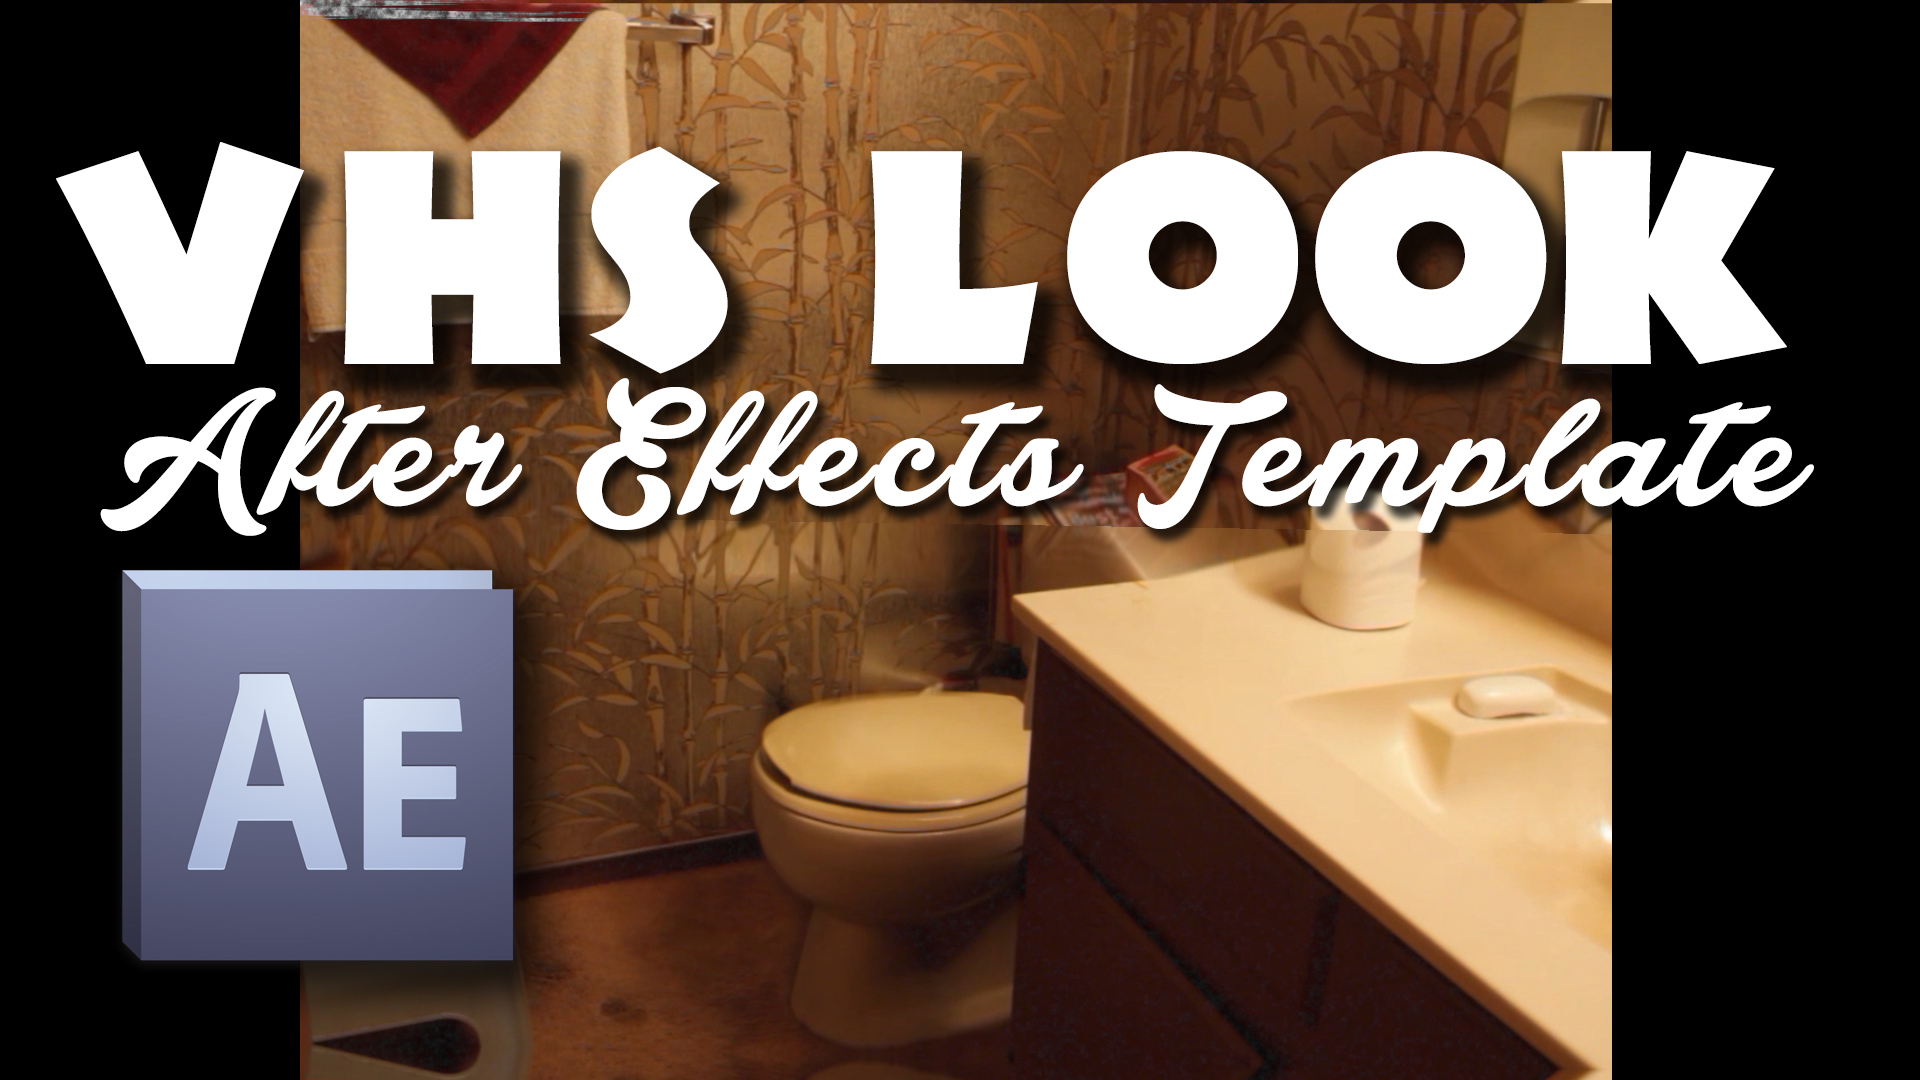 "Thumbnail image of bathroom that is an Adobe After Effects Product VHS look Template to make your videos look like 80s vhs tape with the noise if you open it in Adobe after effects, it's a free download, just put your email where it says ""Your Email"" and click Download Now button below"